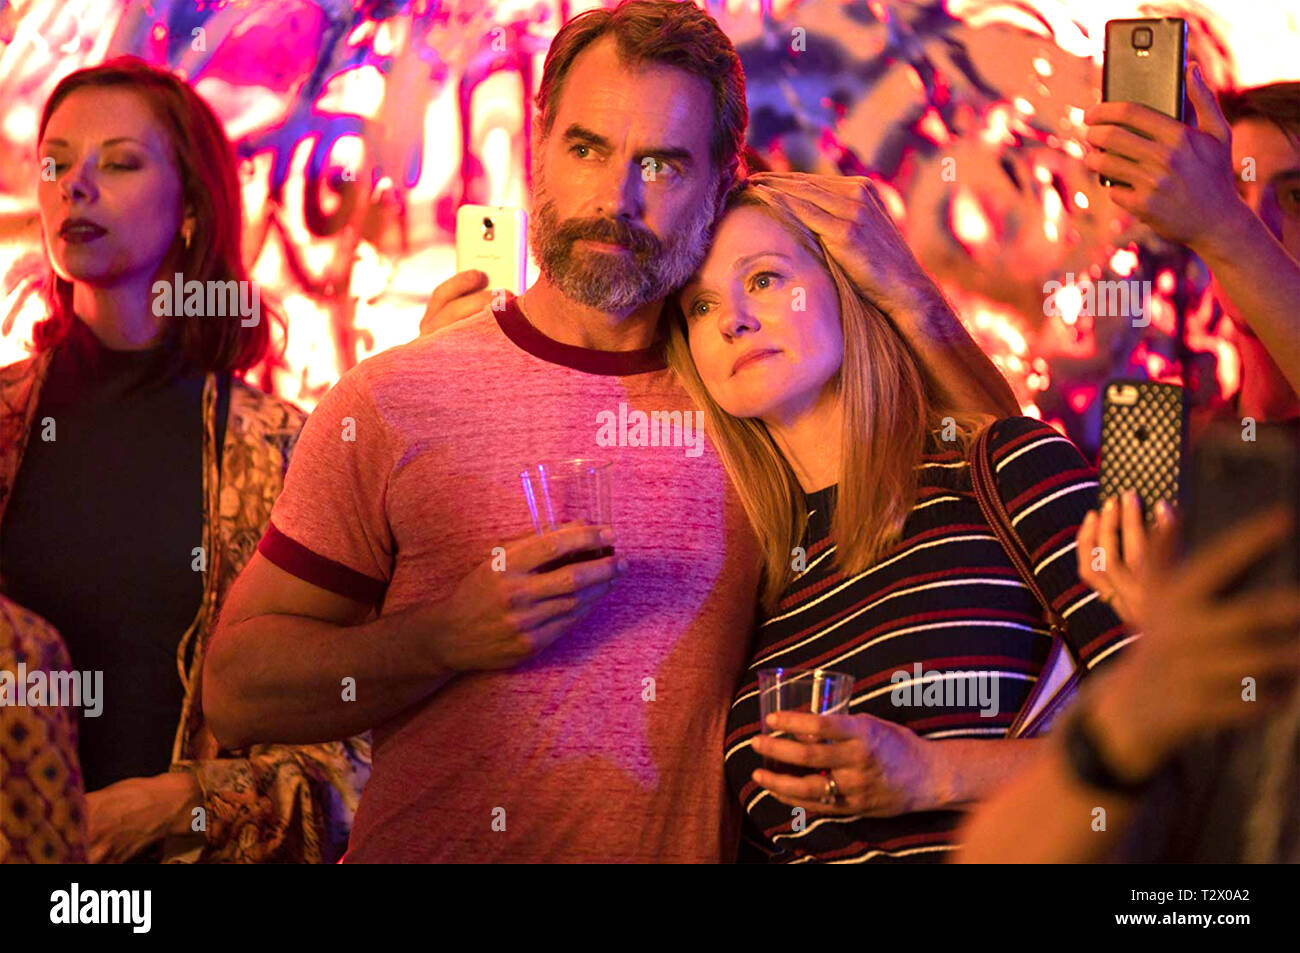 TALES OF THE CITY 2019 Netflix production with Laura Linney and Murray Bartlett - Stock Image